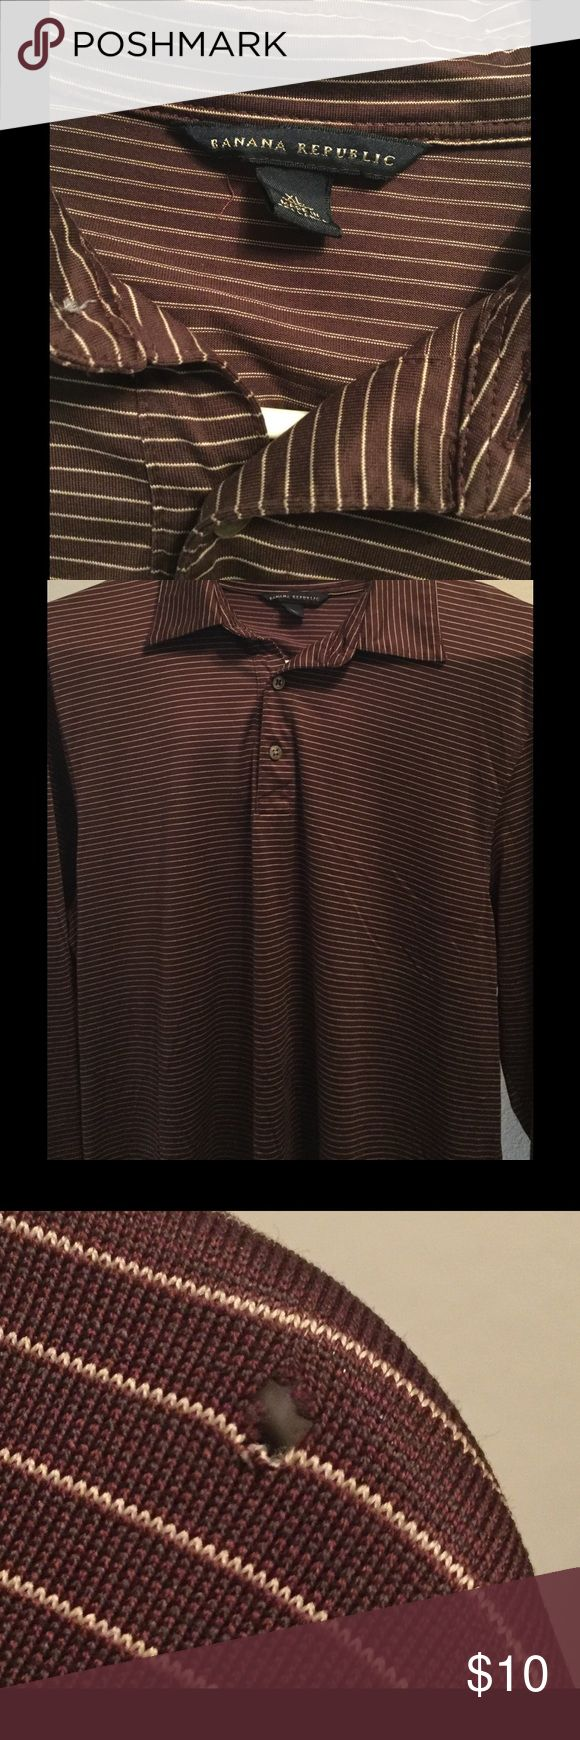 Men's Banana Republic long sleeved polo shirt Men's long sleeved polo shirt. One small hole in upper left shoulder (picture is zoomed in) Banana Republic Shirts Polos